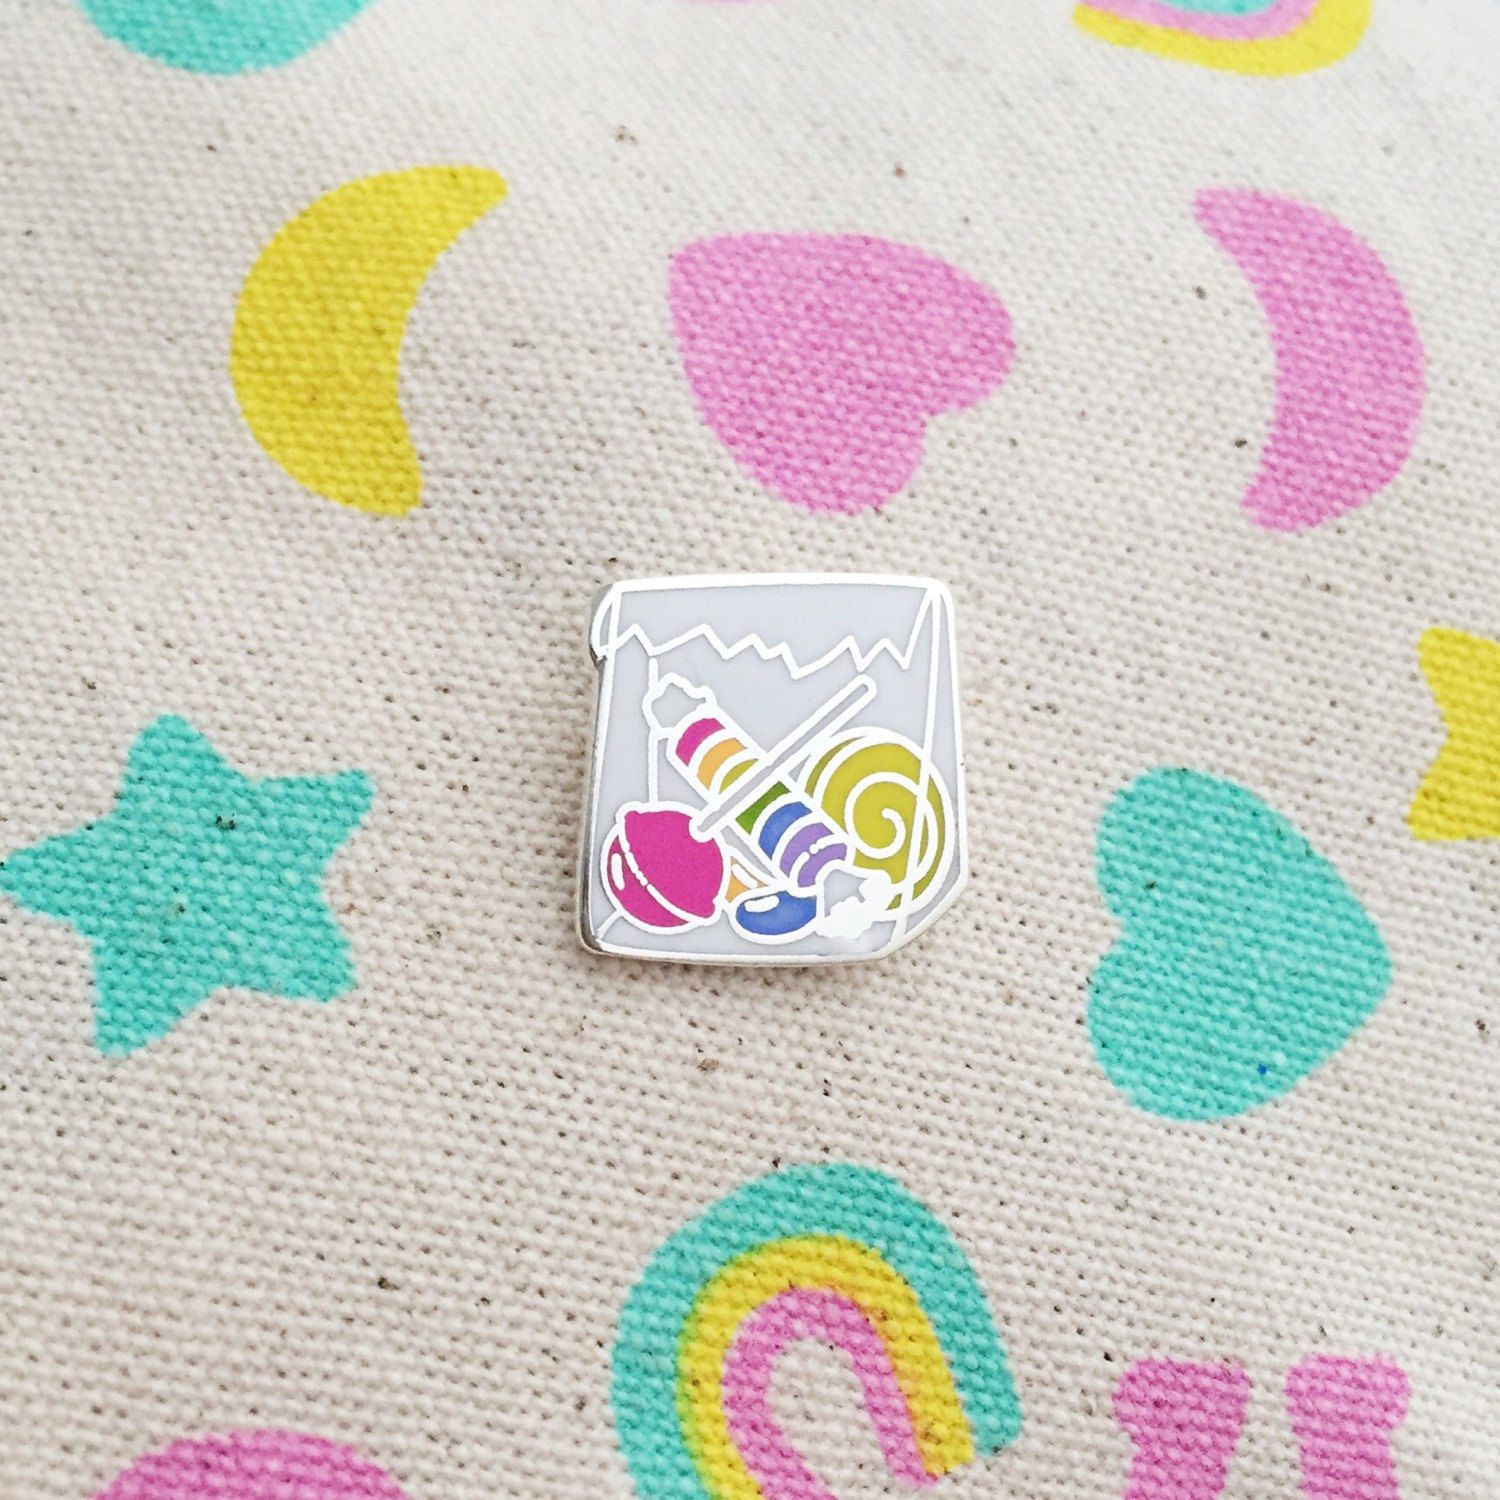 10p Mix Up Enamel Pin Badge - Bag of Sweets - Lapel Pin - Tie Pin by fairycakes on Etsy https://www.etsy.com/listing/266220097/10p-mix-up-enamel-pin-badge-bag-of